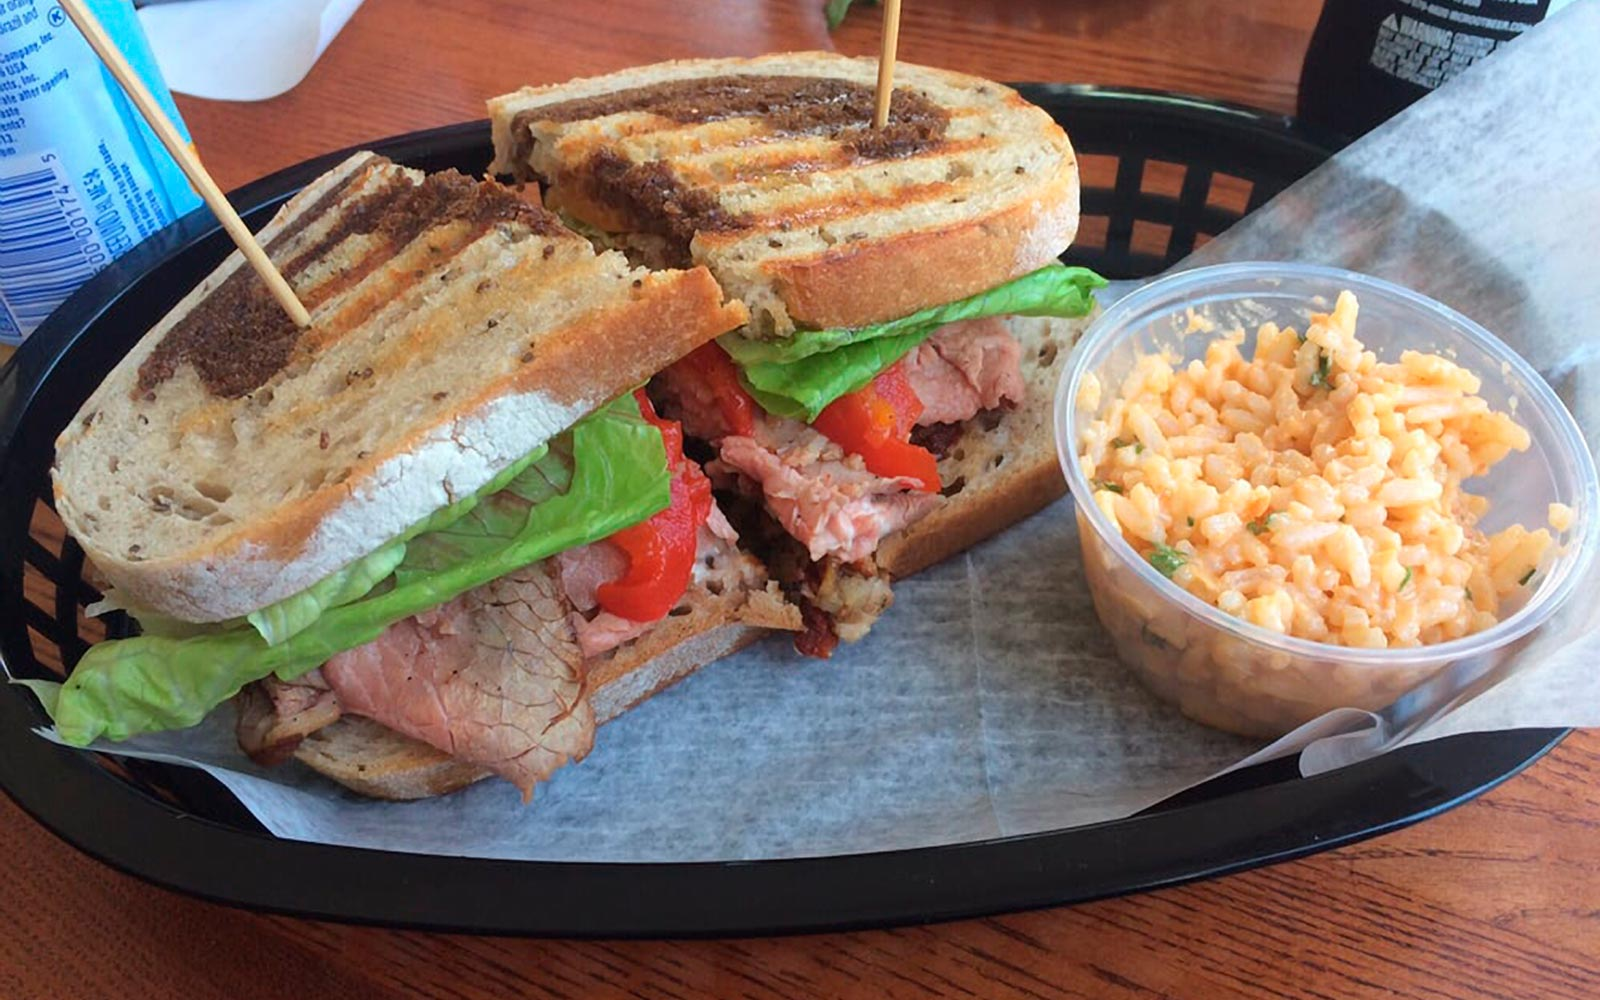 Sandwich at Press On in North Stonington, Connecticut